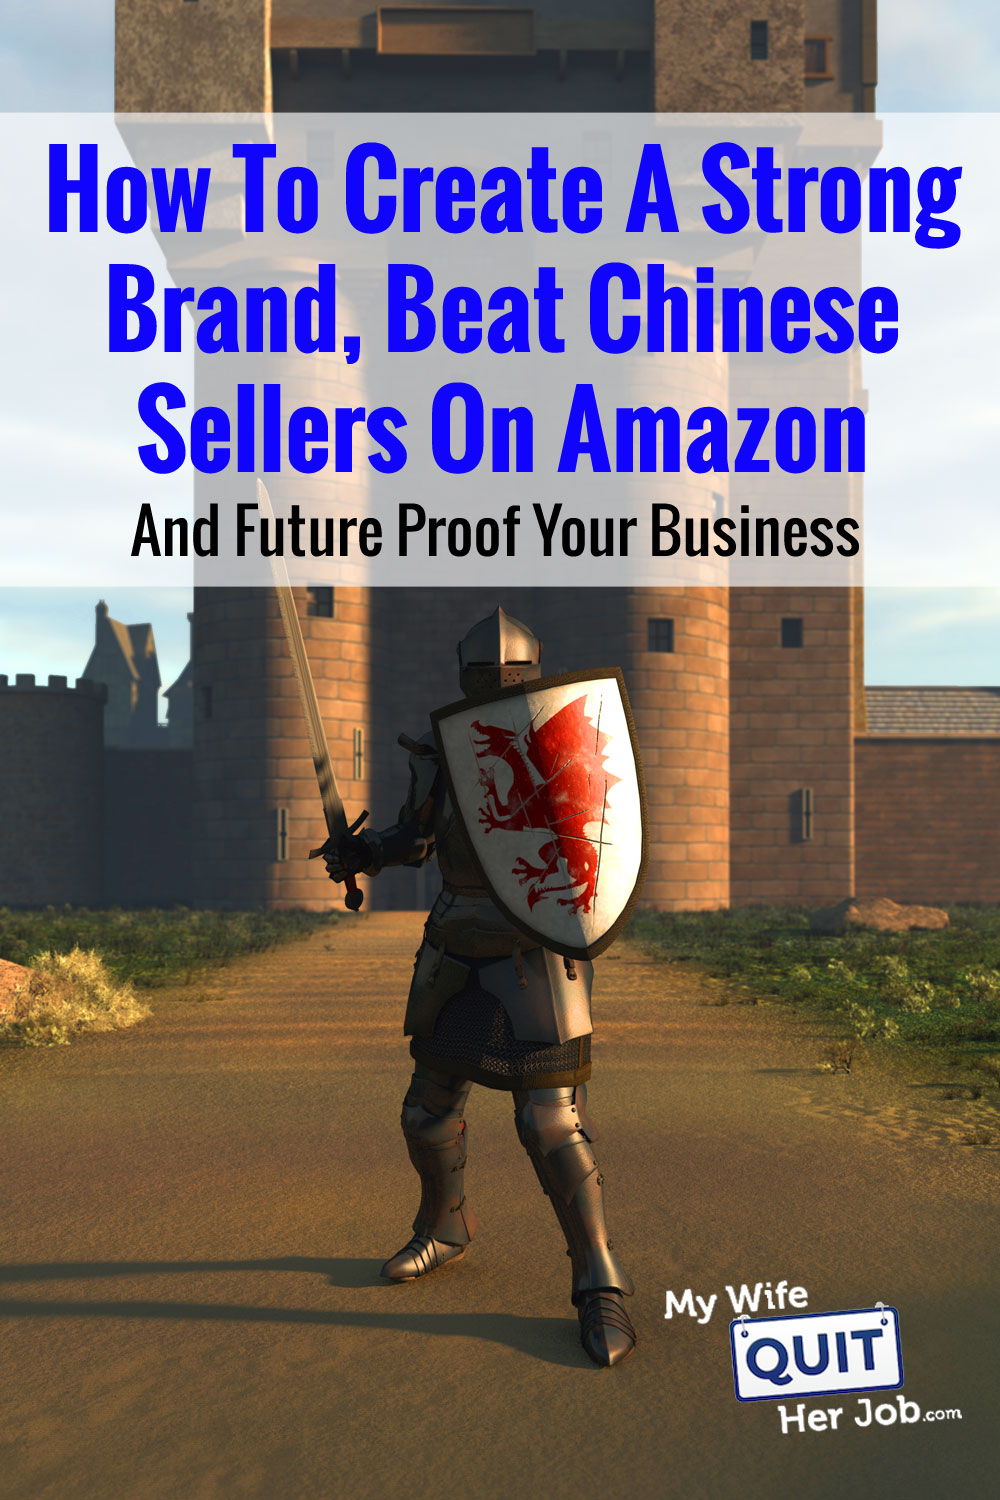 How To Create A Strong Brand, Beat Chinese Sellers On Amazon And Future Proof Your Business